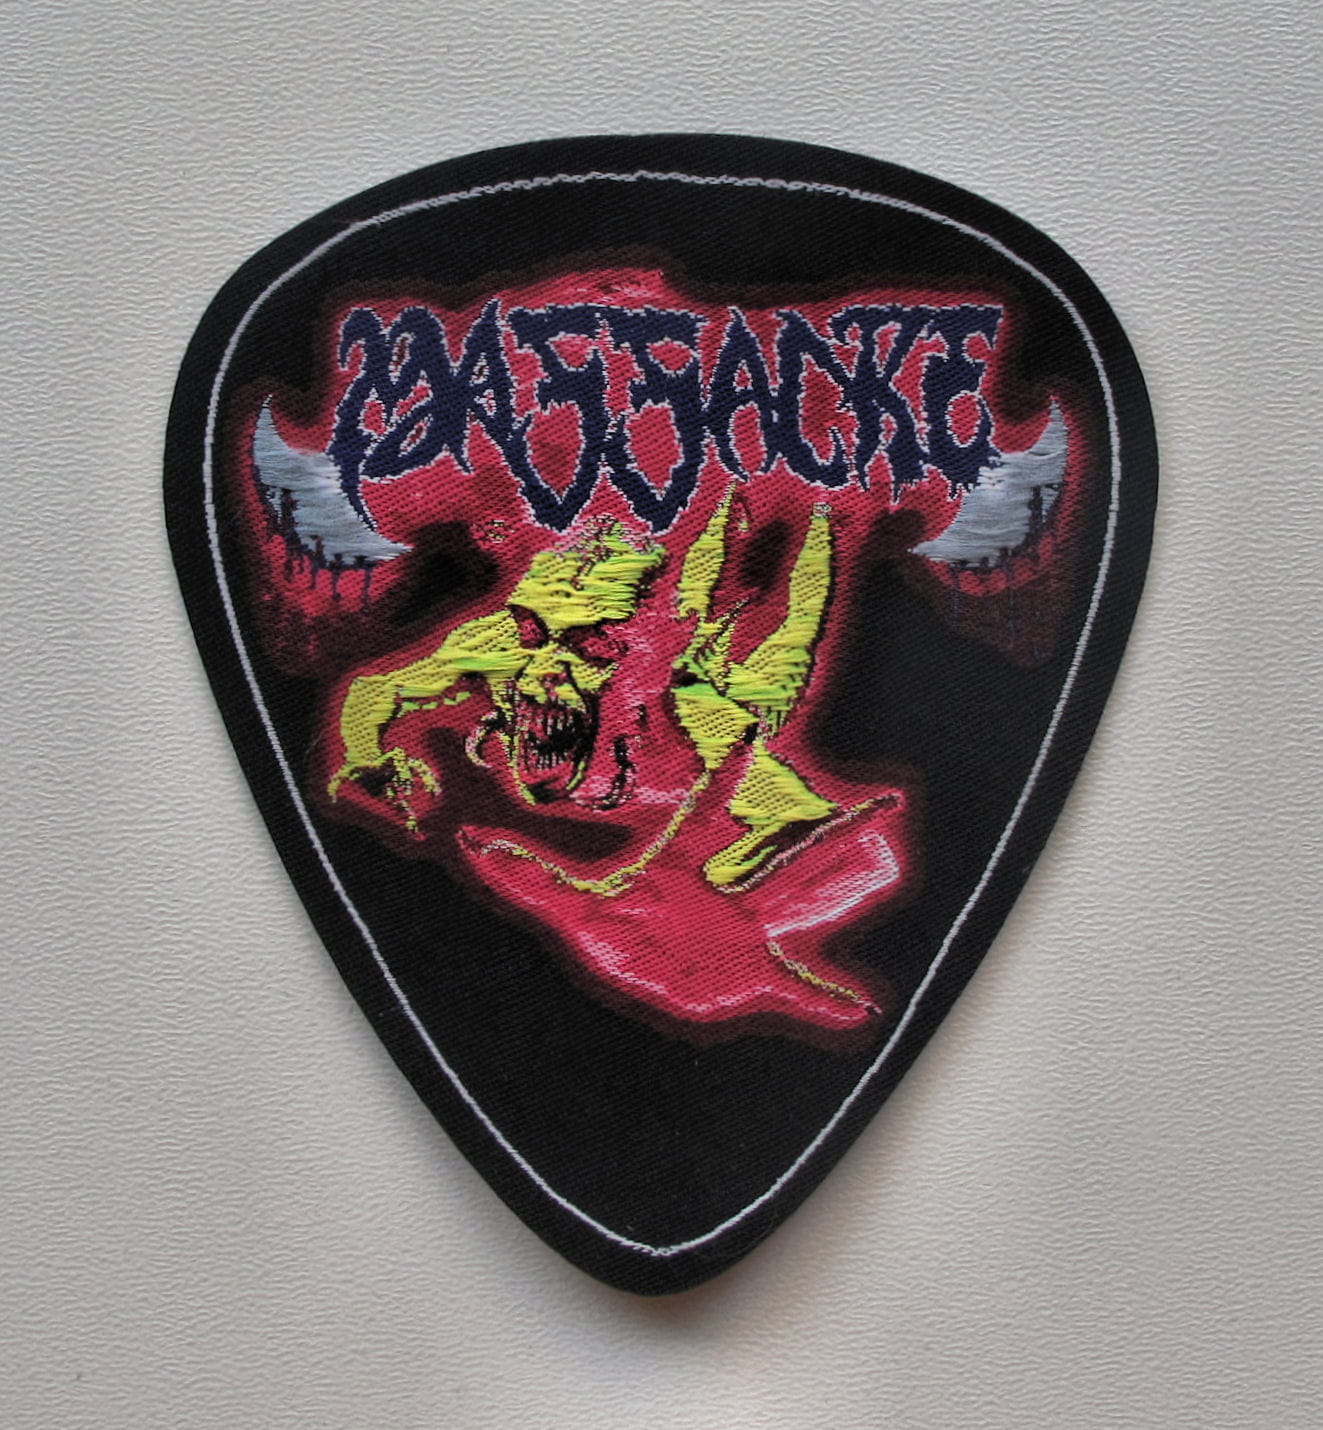 Kreator Cut-Out Logo Woven Patch